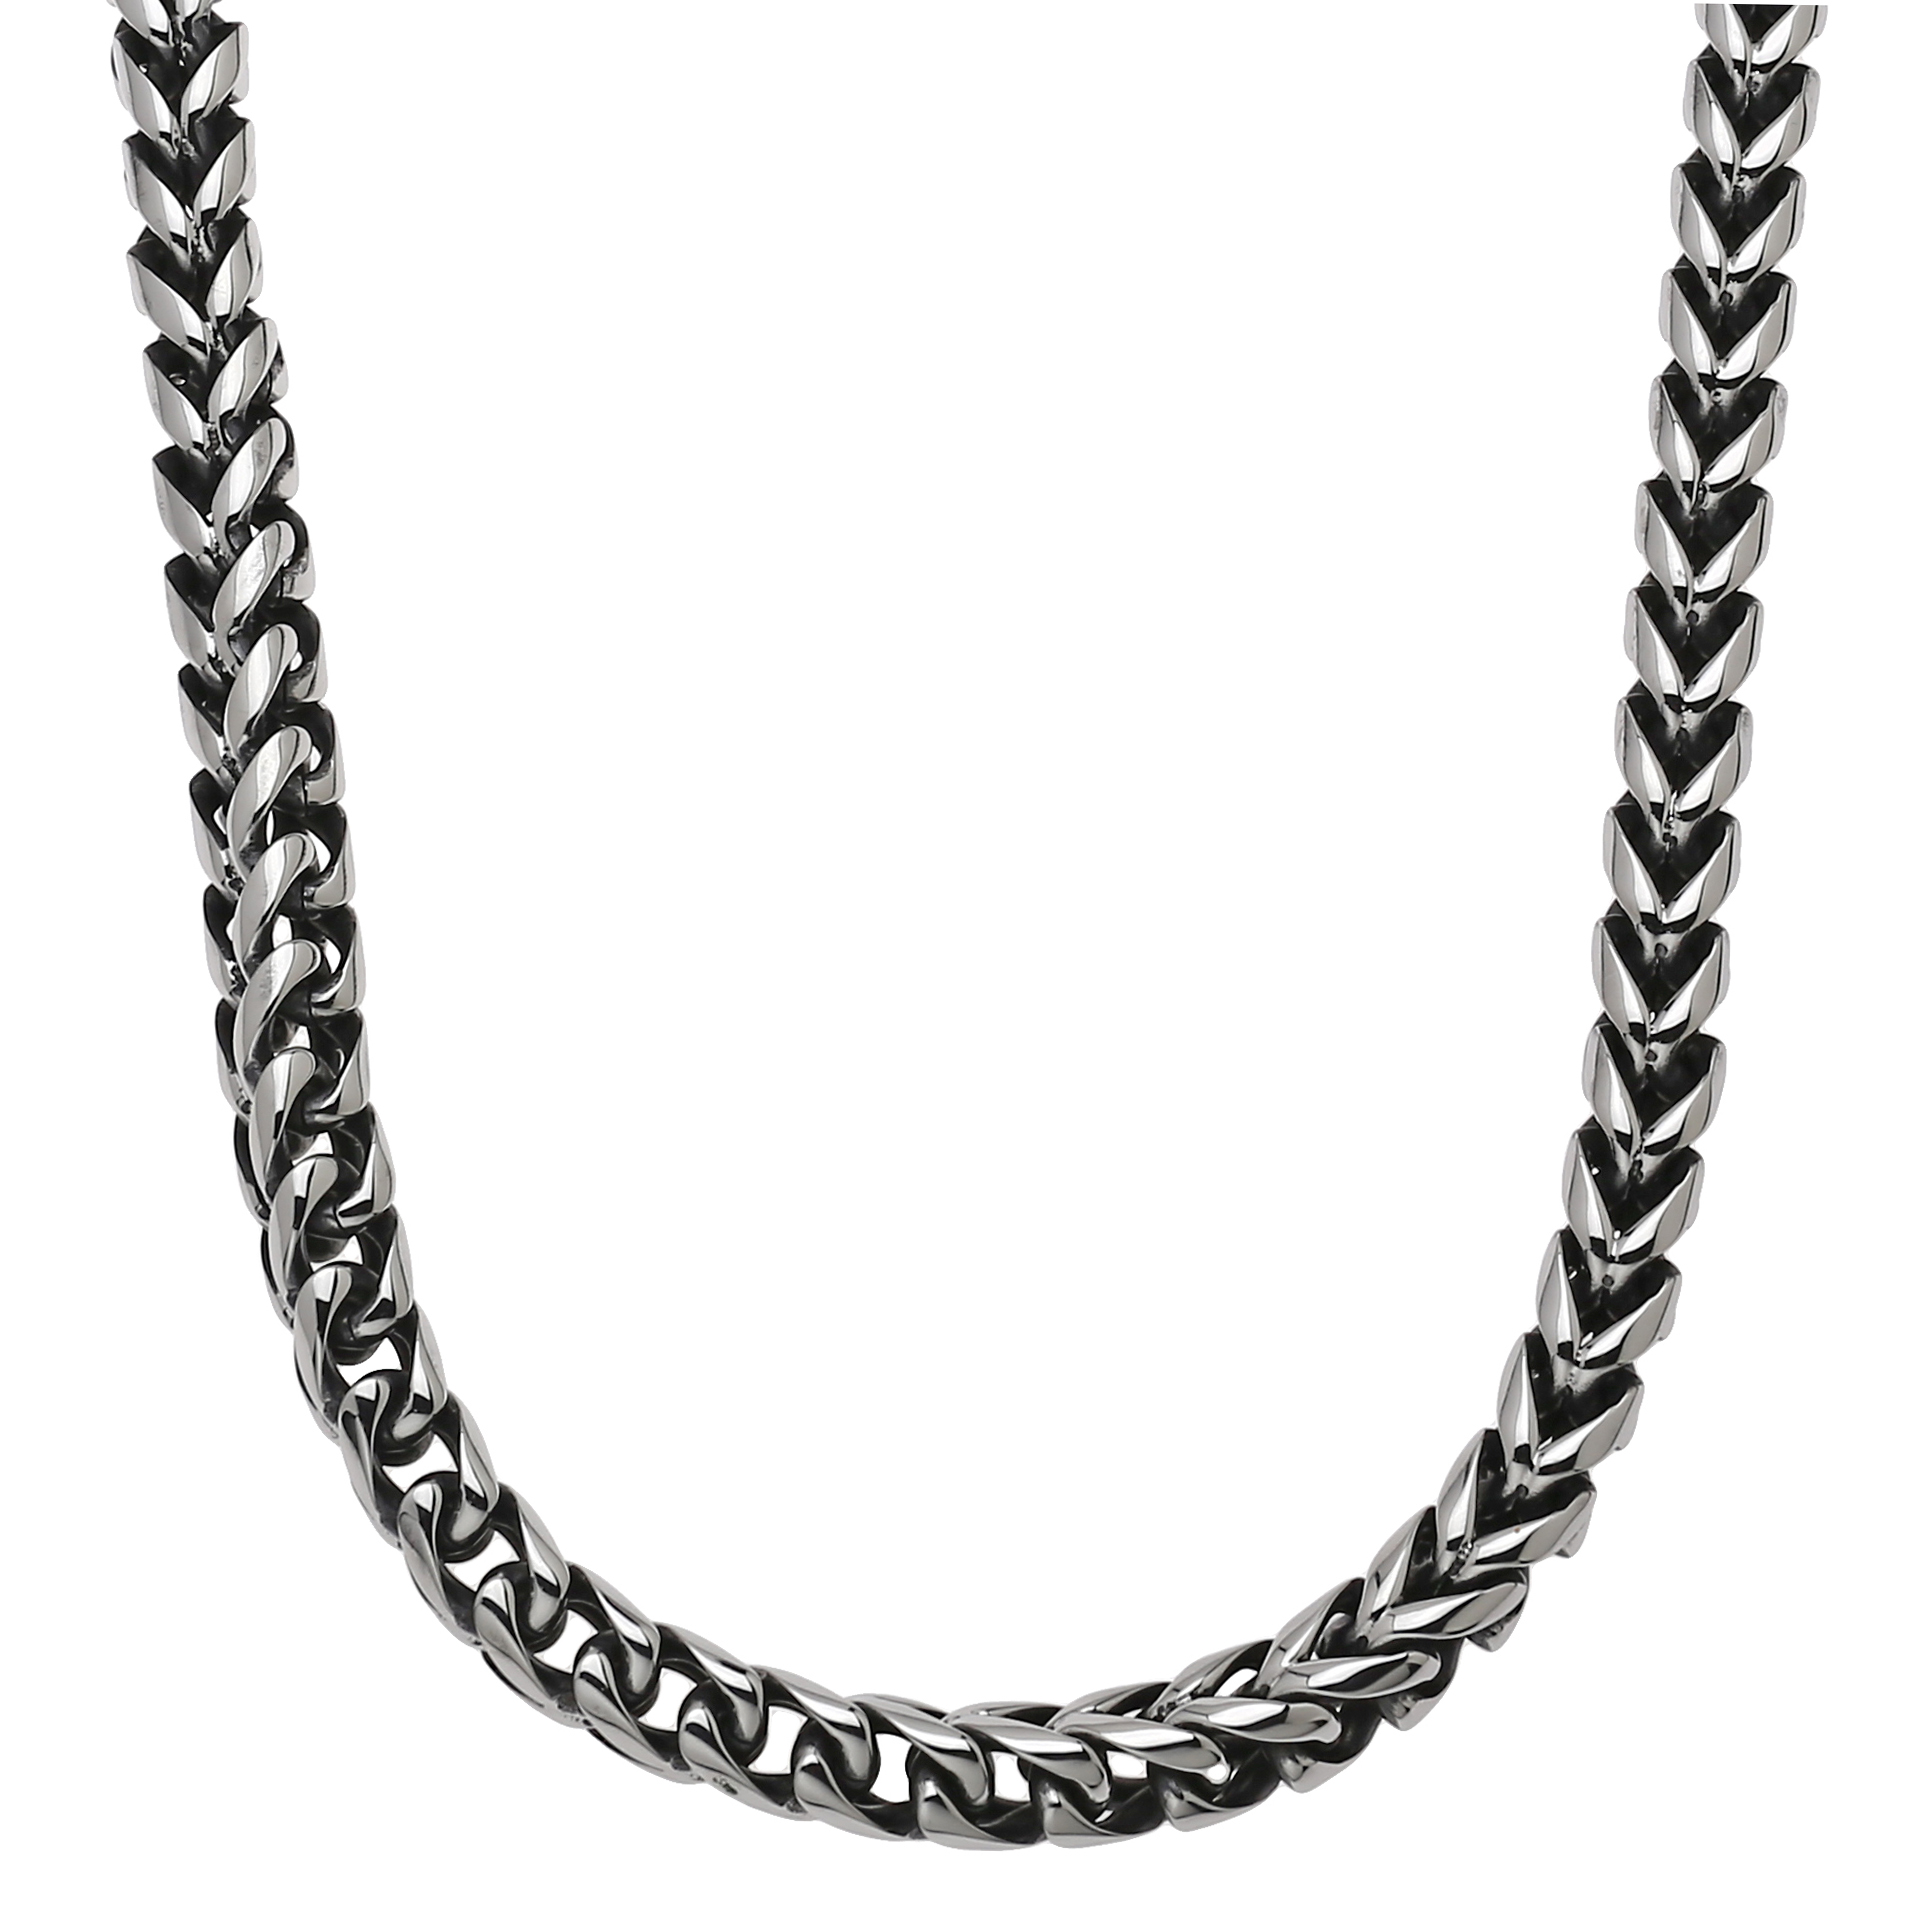 Metro Jewelry Stainless Steel Foxtail Necklace BP